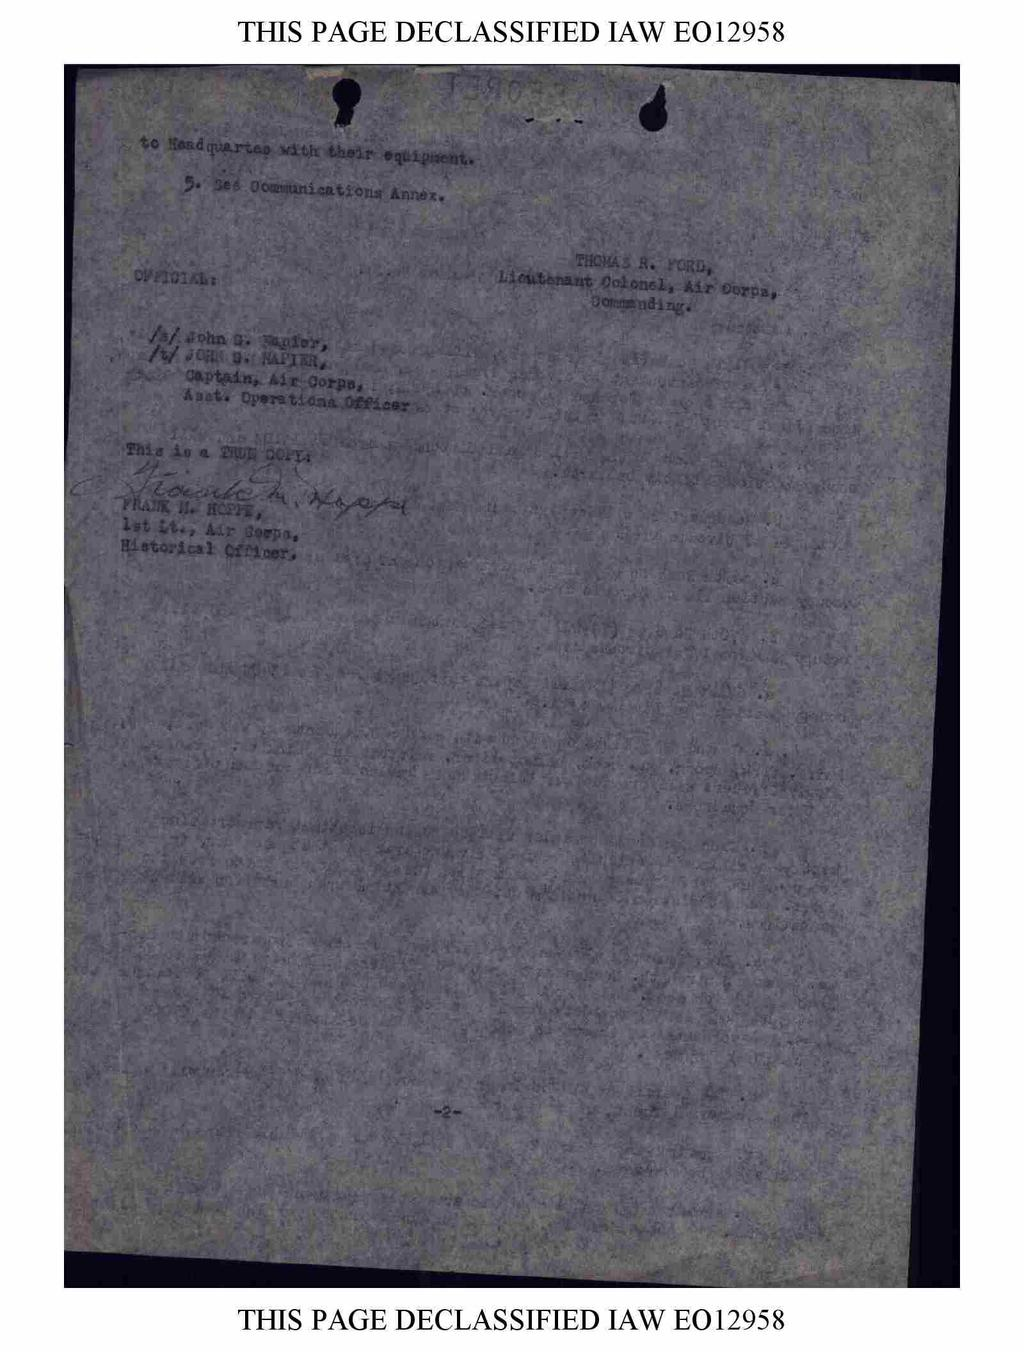 THIS PAGE DECLASSIFIED IAW EO 2958